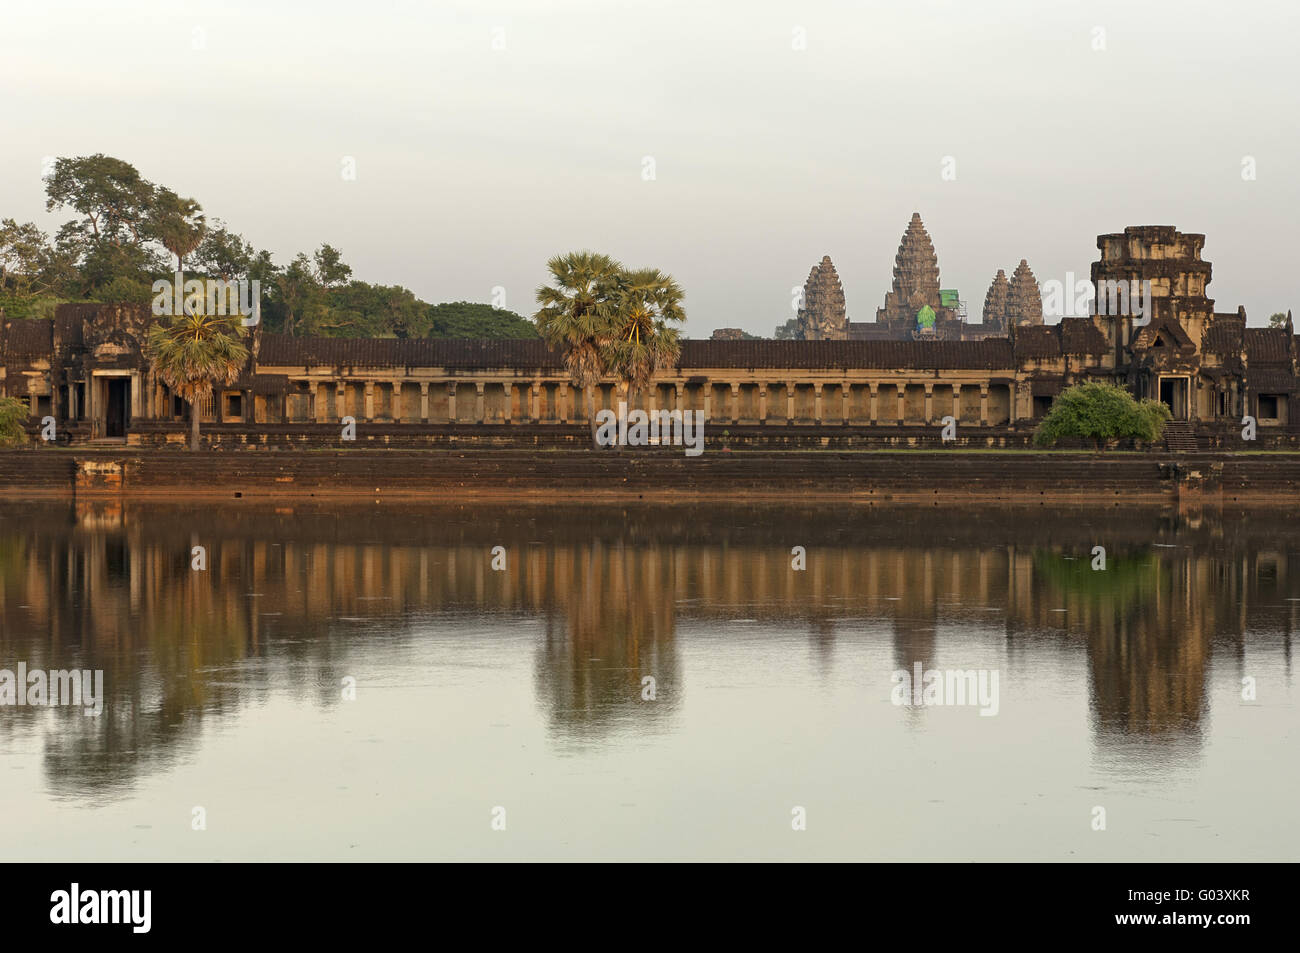 west wing of the Angkor Wat temple, Cambodia - Stock Image